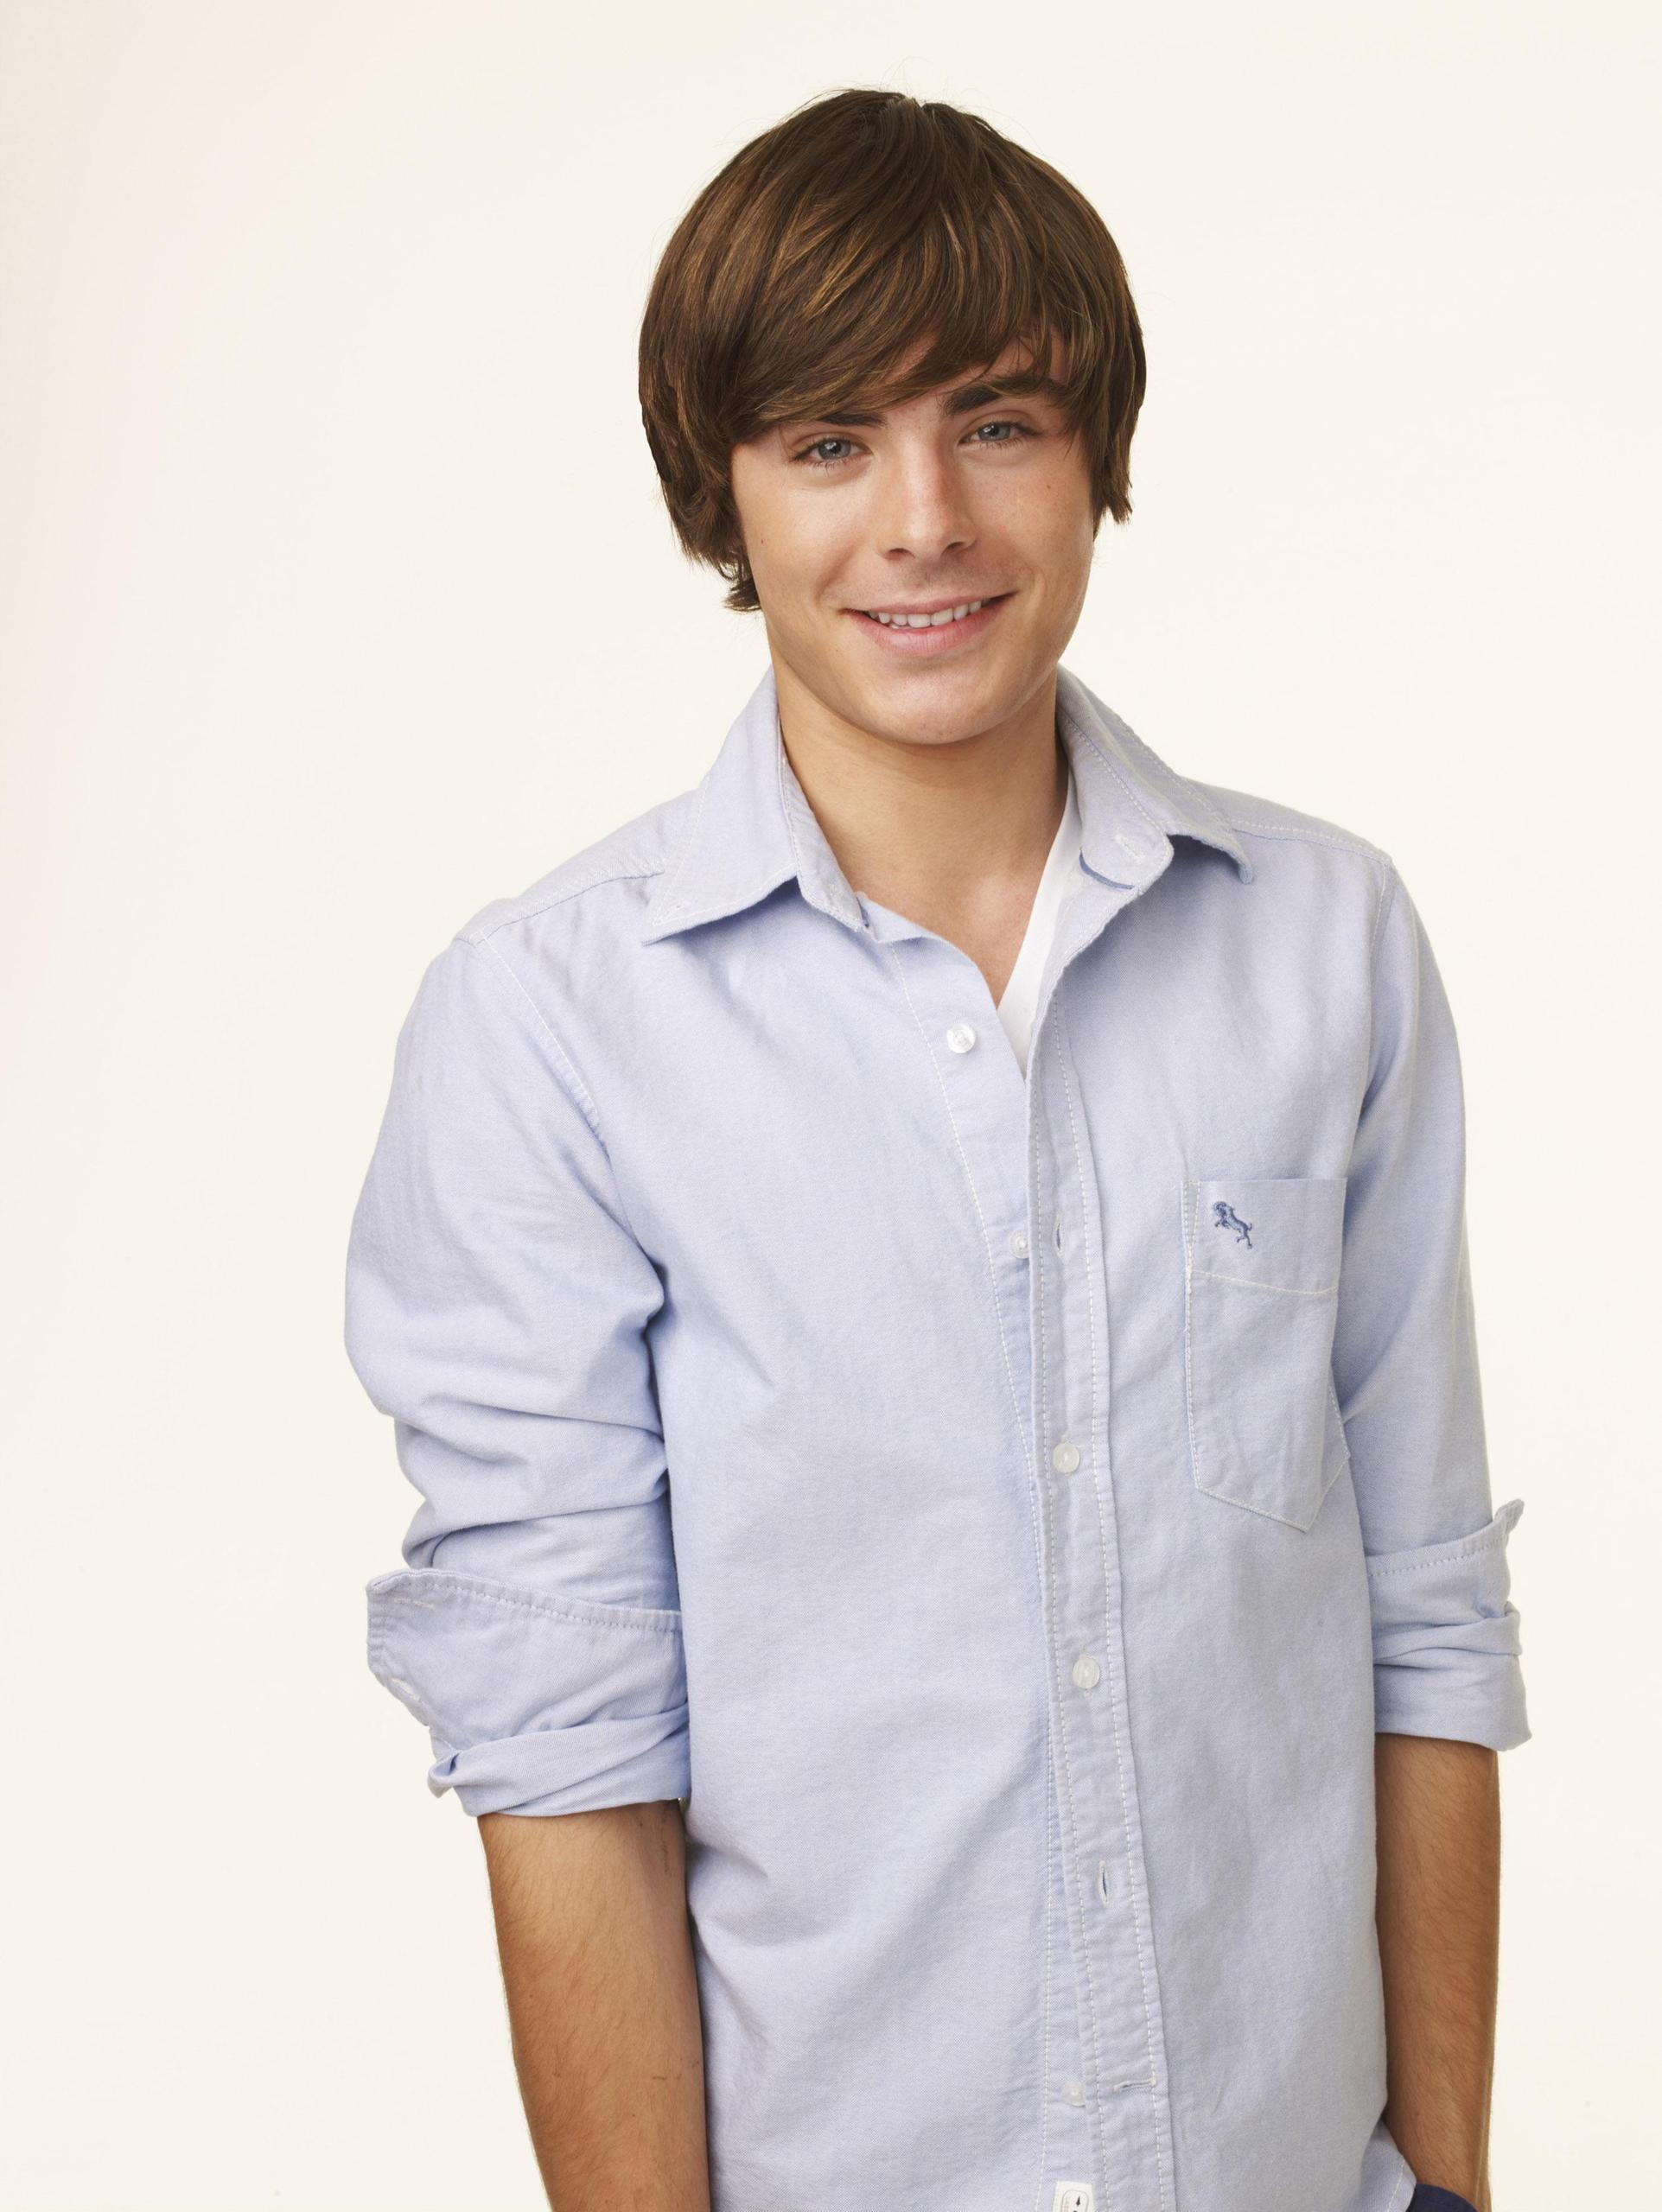 High School Musical 3 - Zac Efron